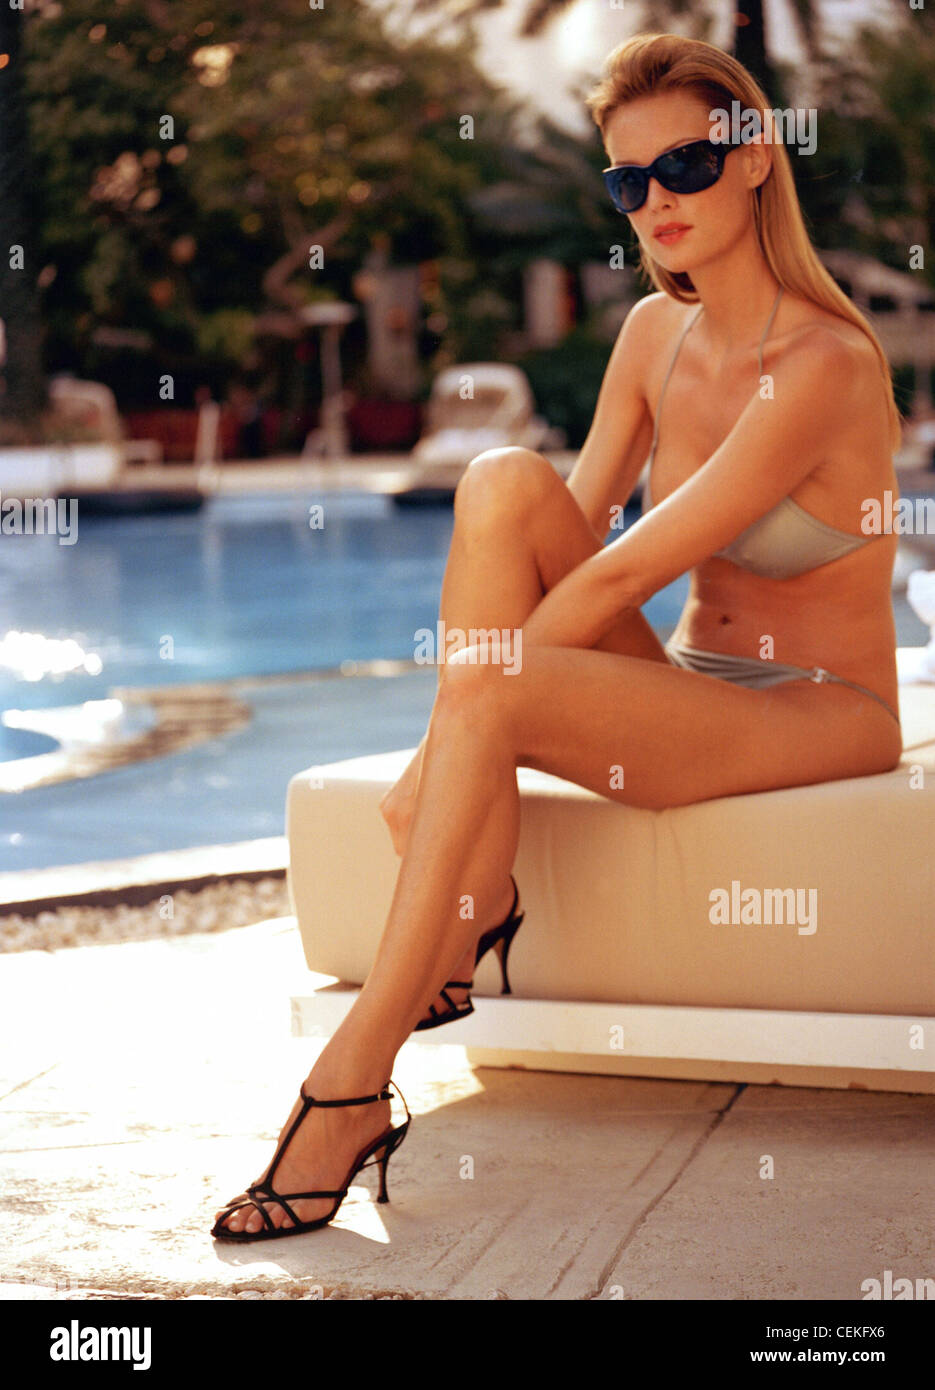 Female dark blonde straight hair worn tucked behind her ears wearing a silver bikini and strappy black high heeled - Stock Image